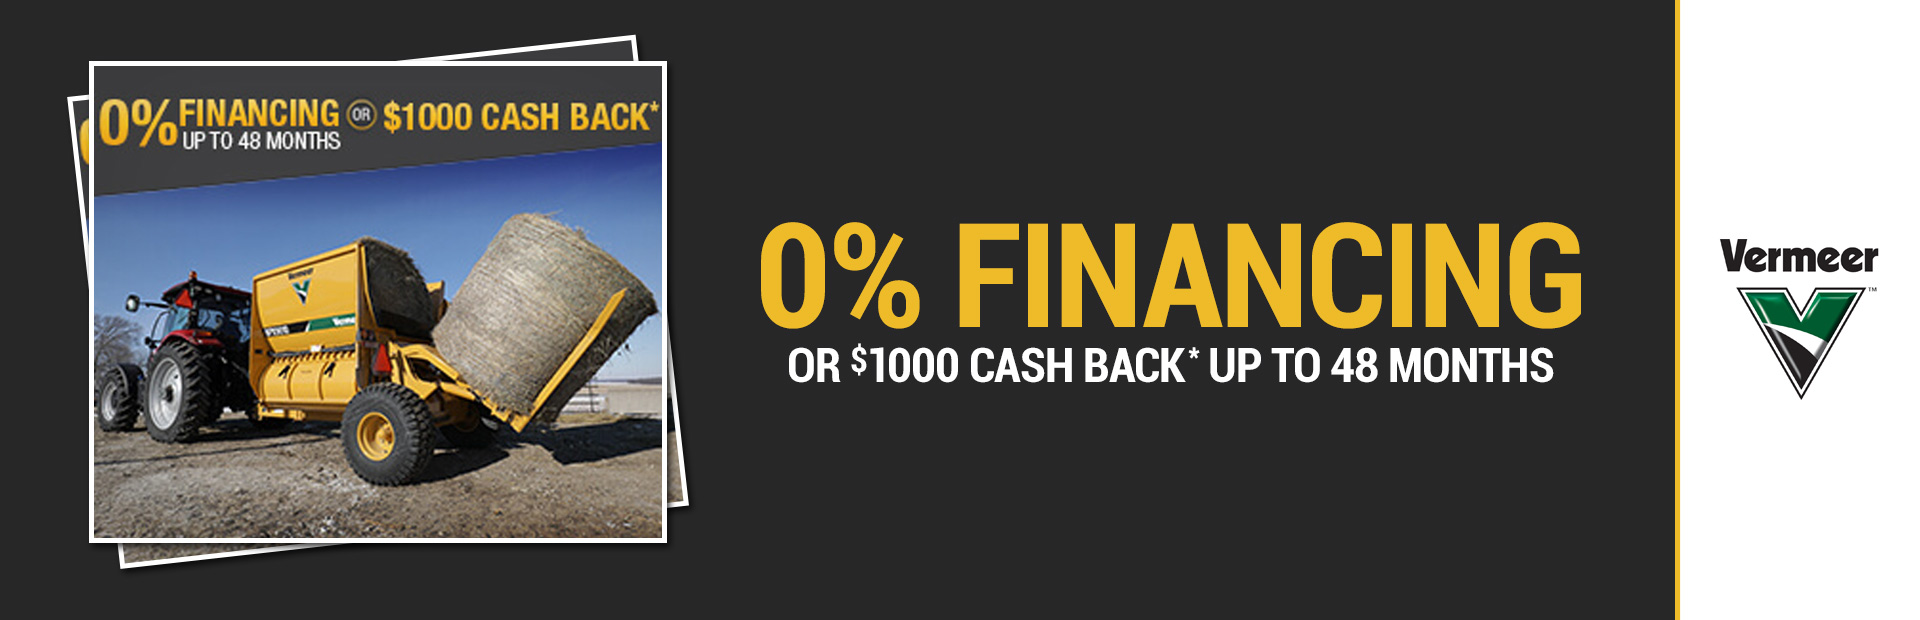 Vermeer: 0% Financing or $1000 Cash Back* up to 48 months